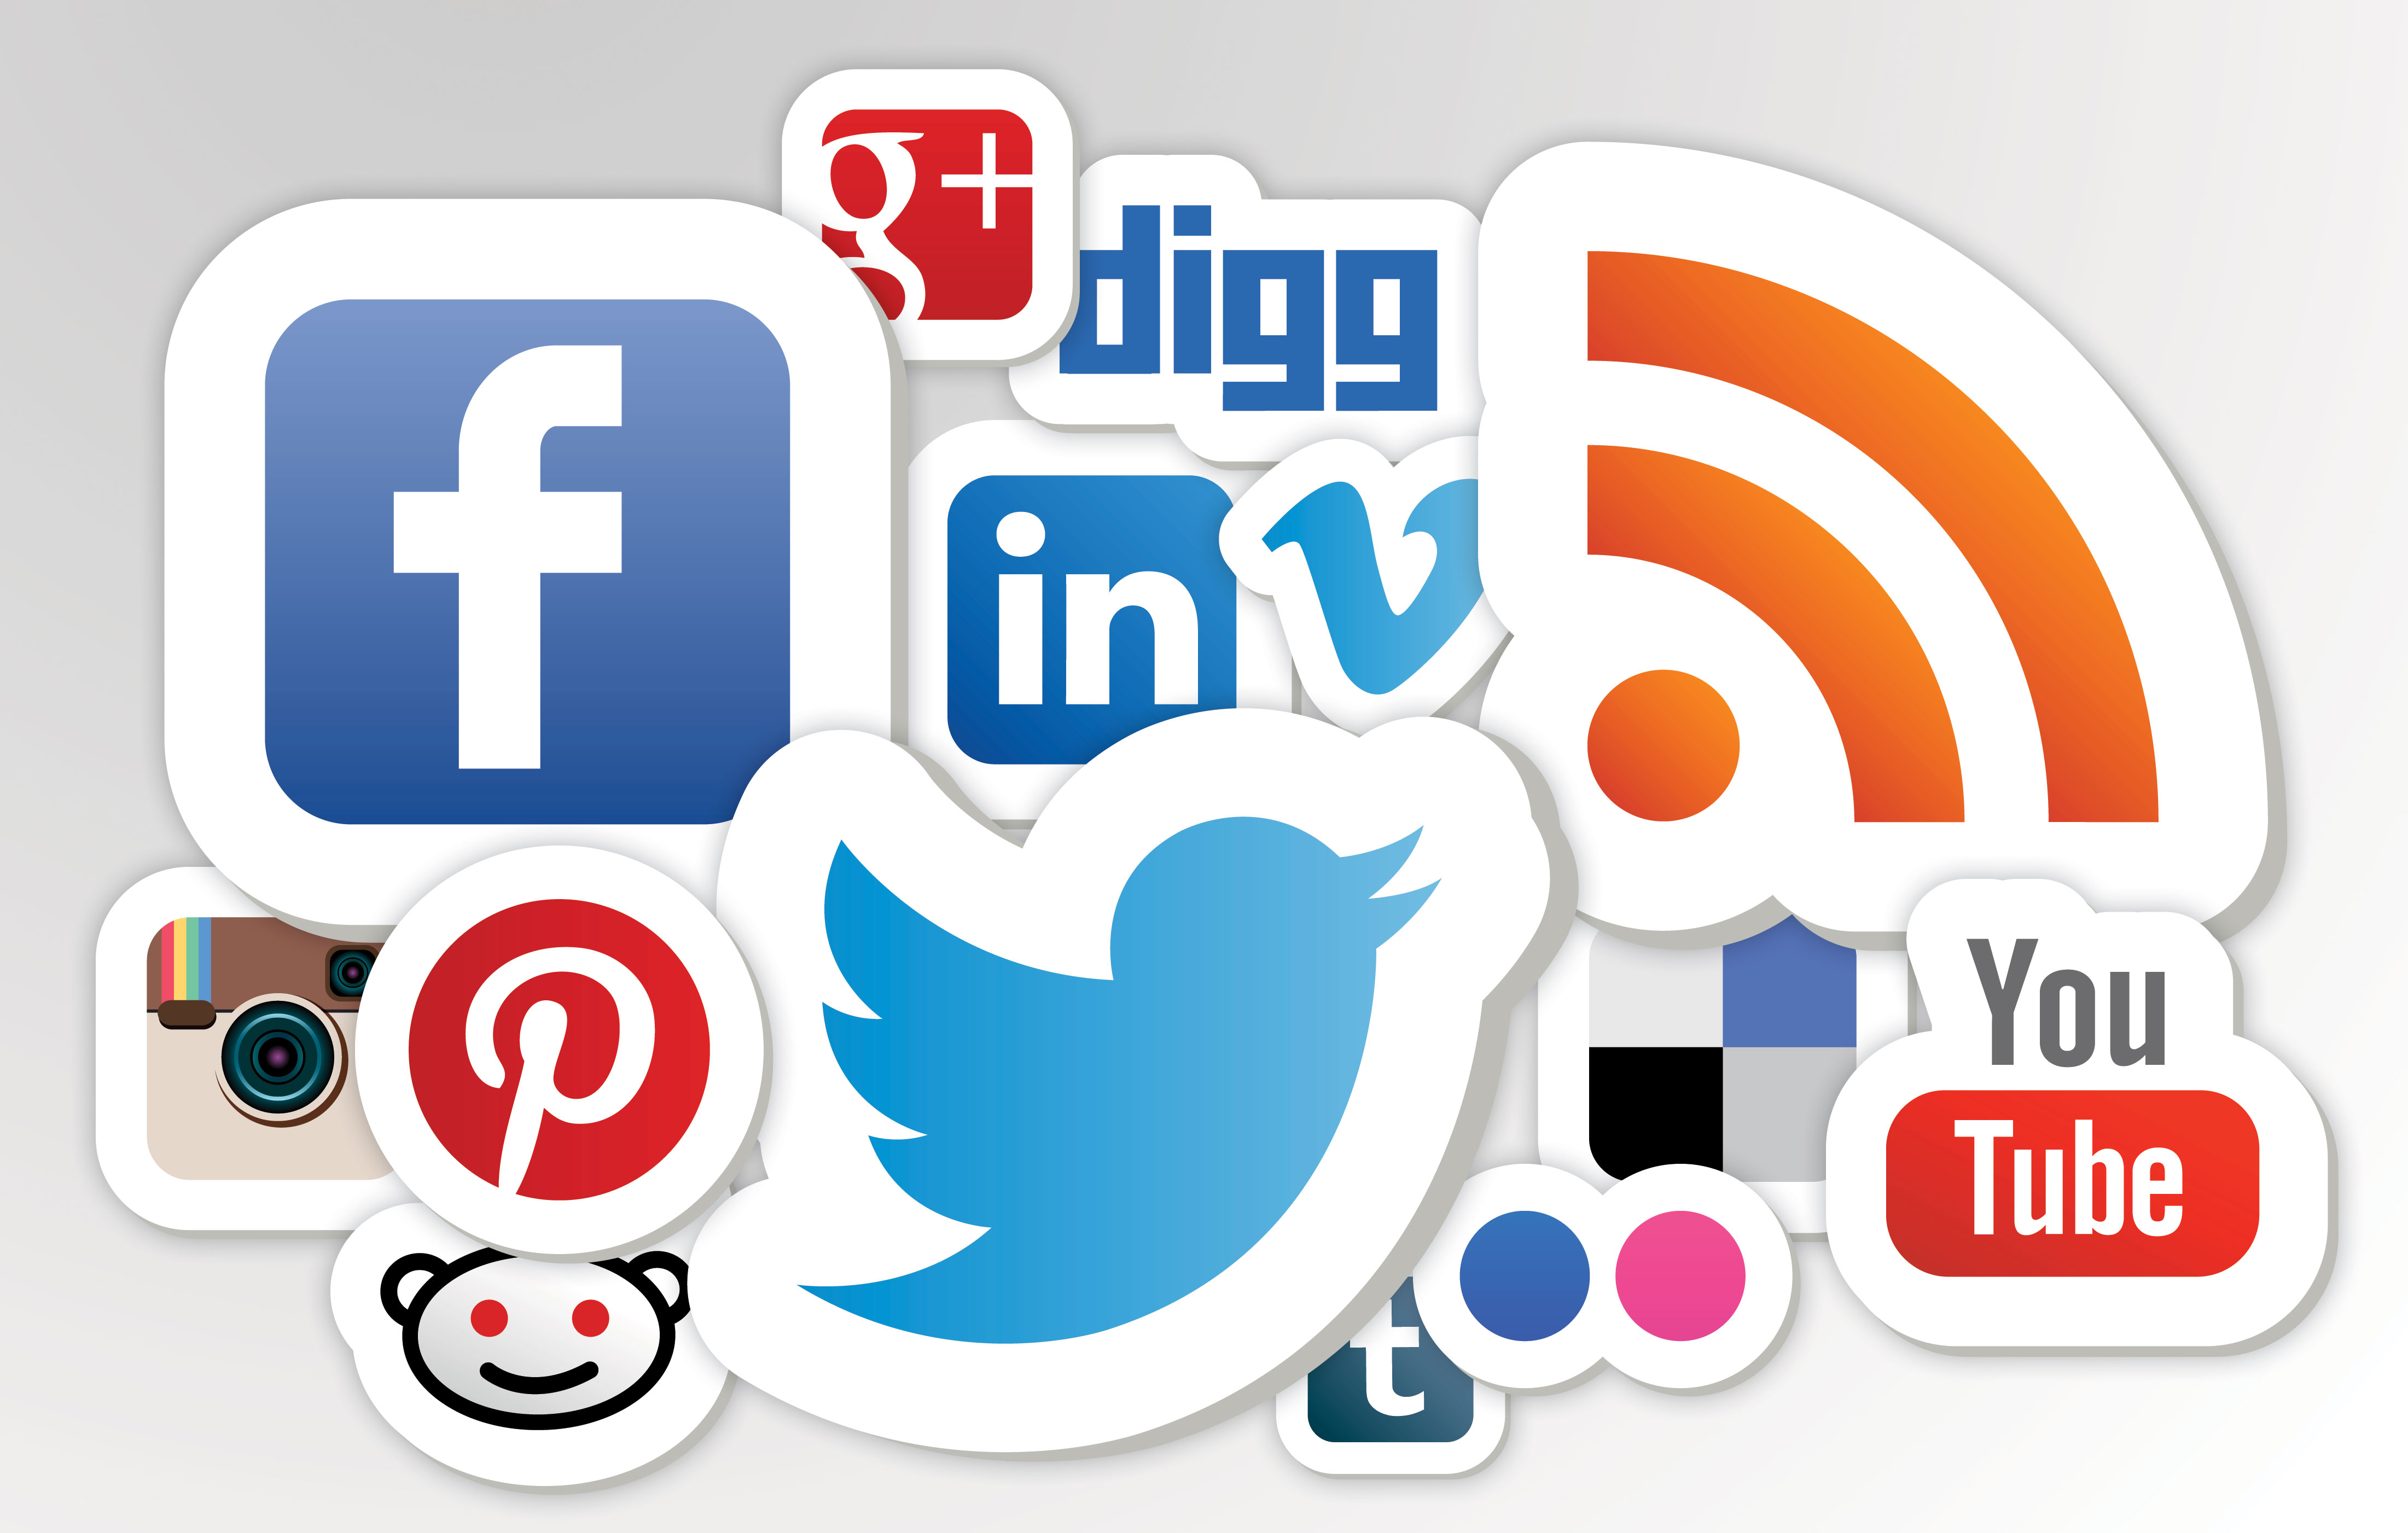 social media is sound CRE marketing practice